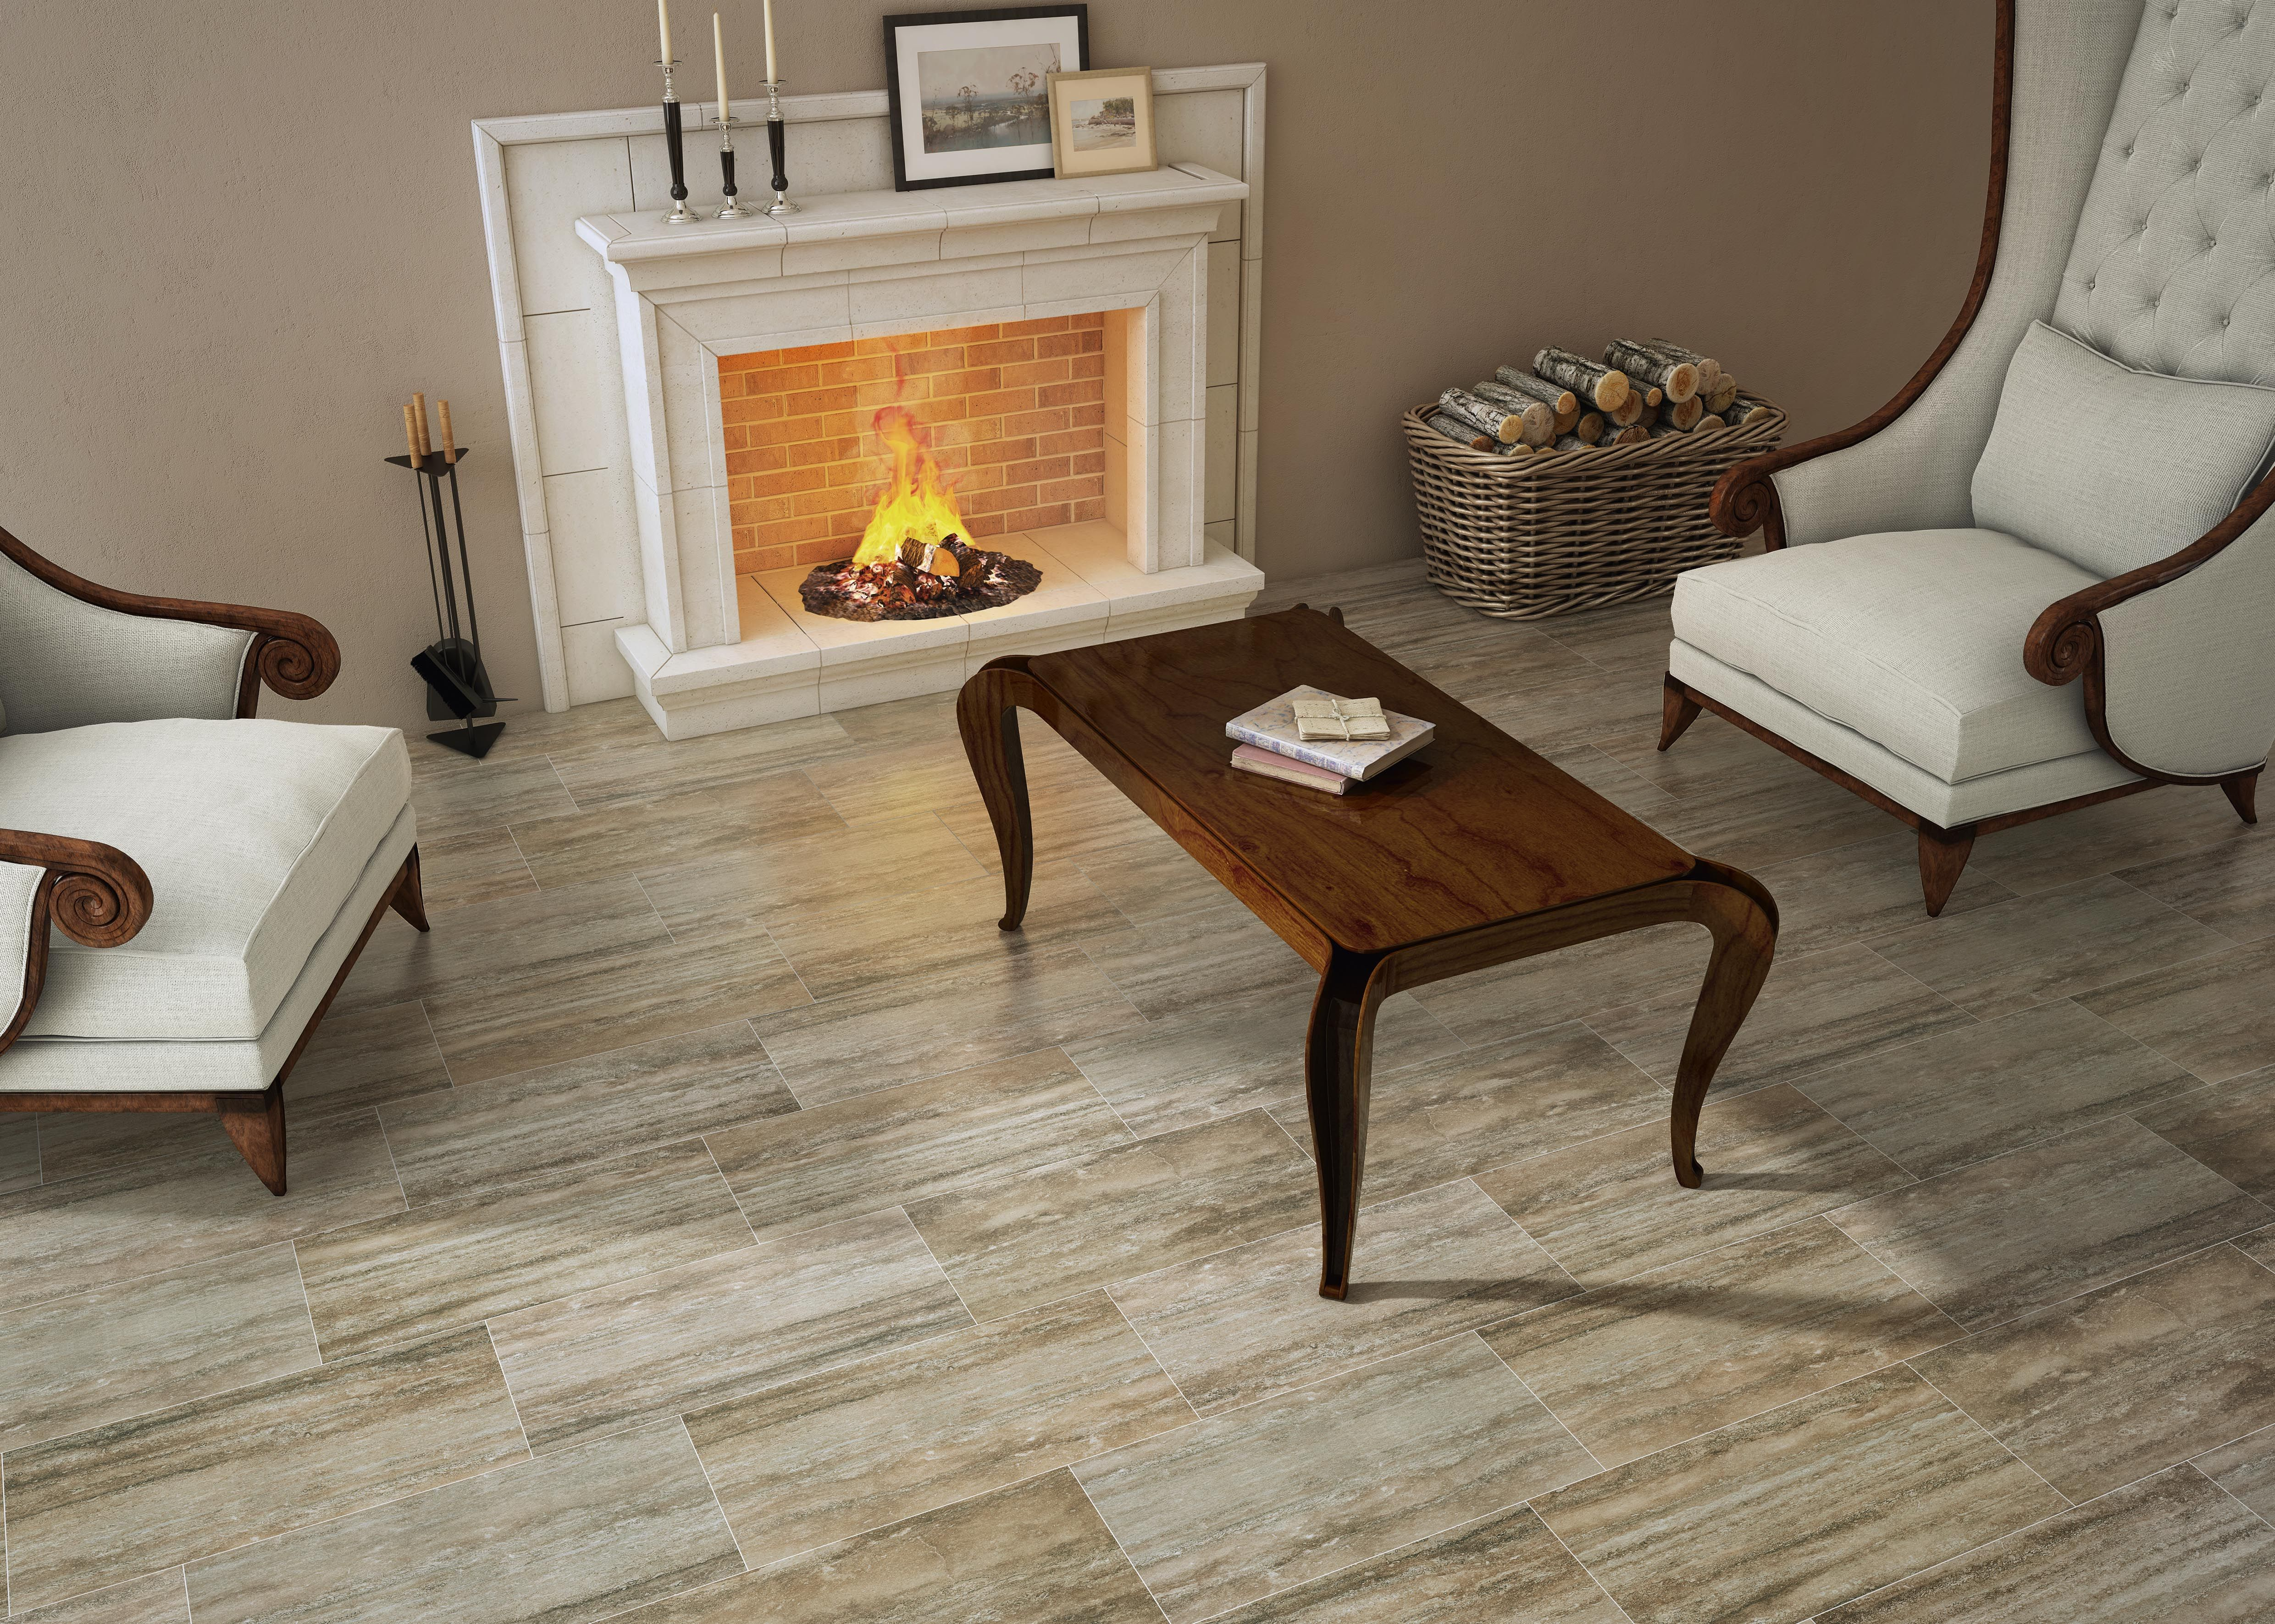 planks styles files spectacular and with that uncategorized home get tiles interior shocking porcelain of inspiration like look khabarsnet floors wood